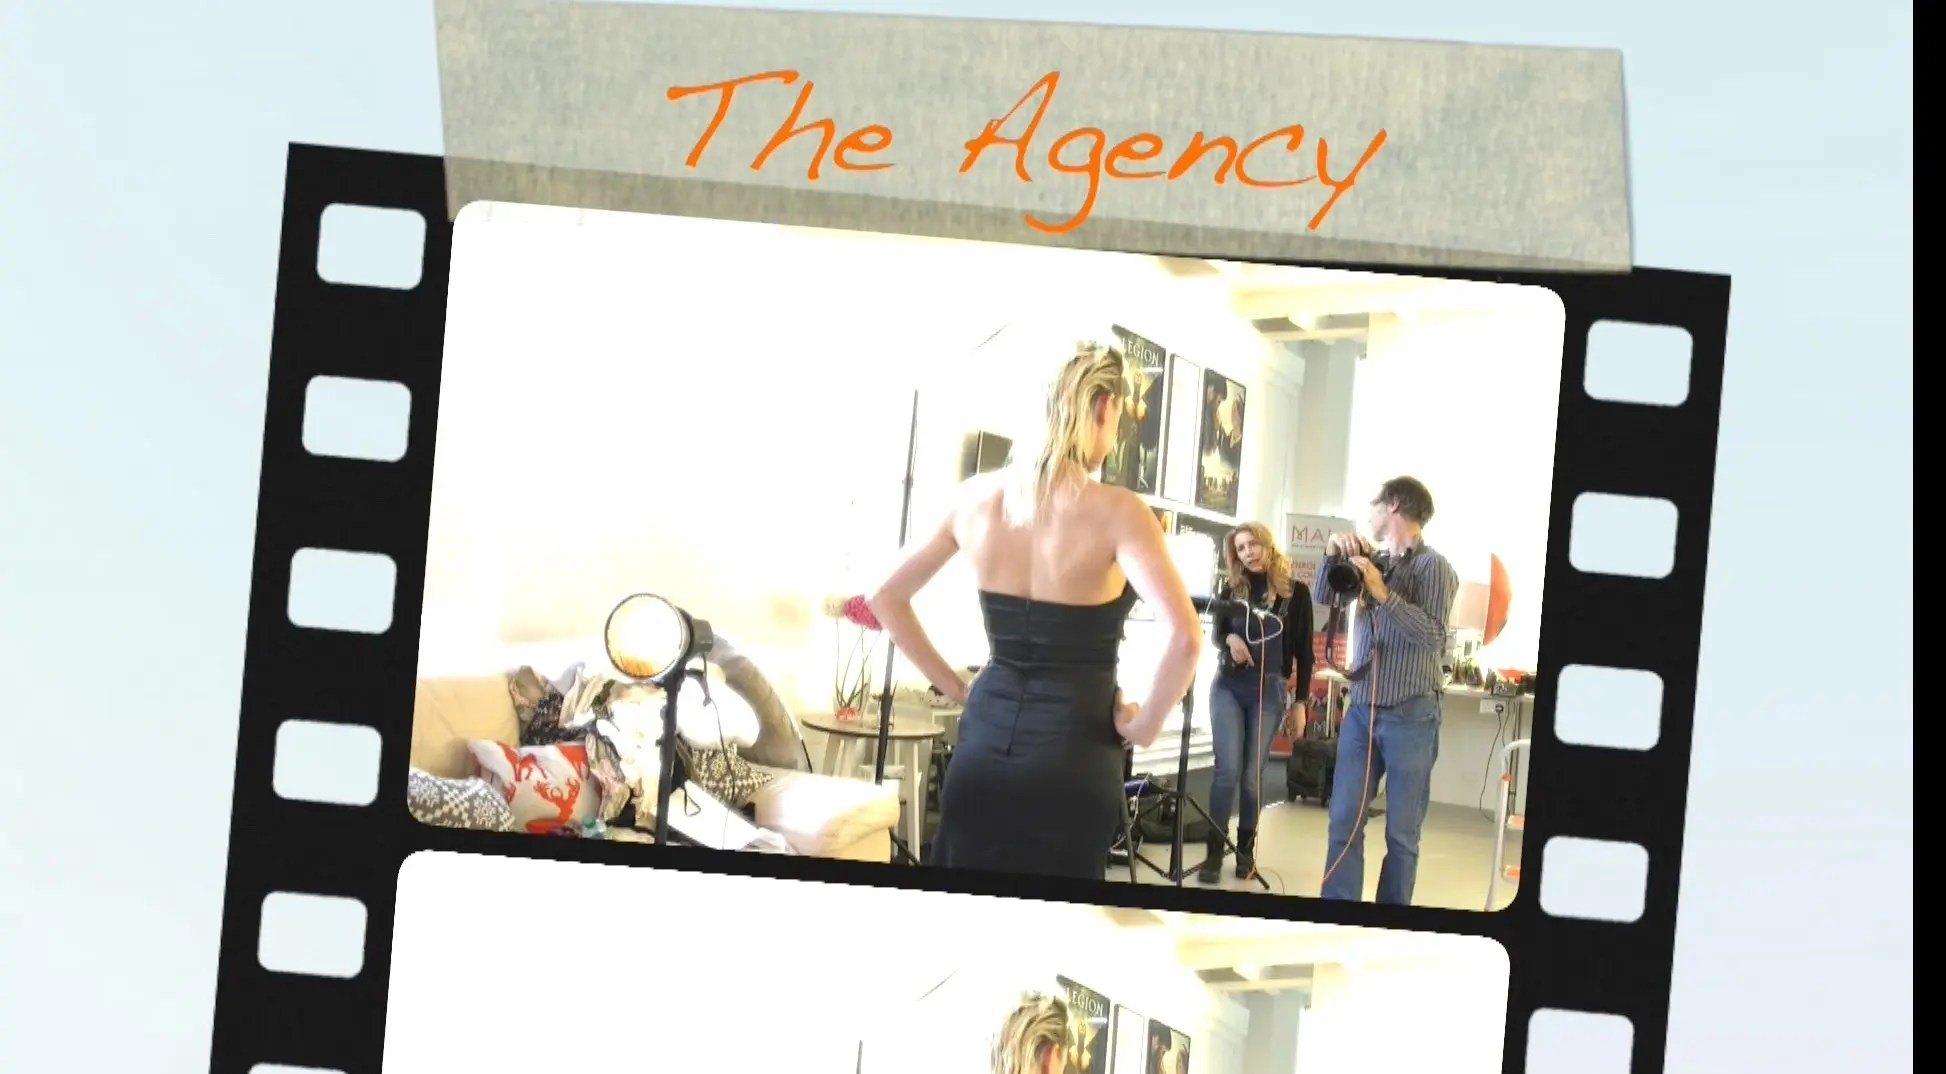 MAKUP - The Agency